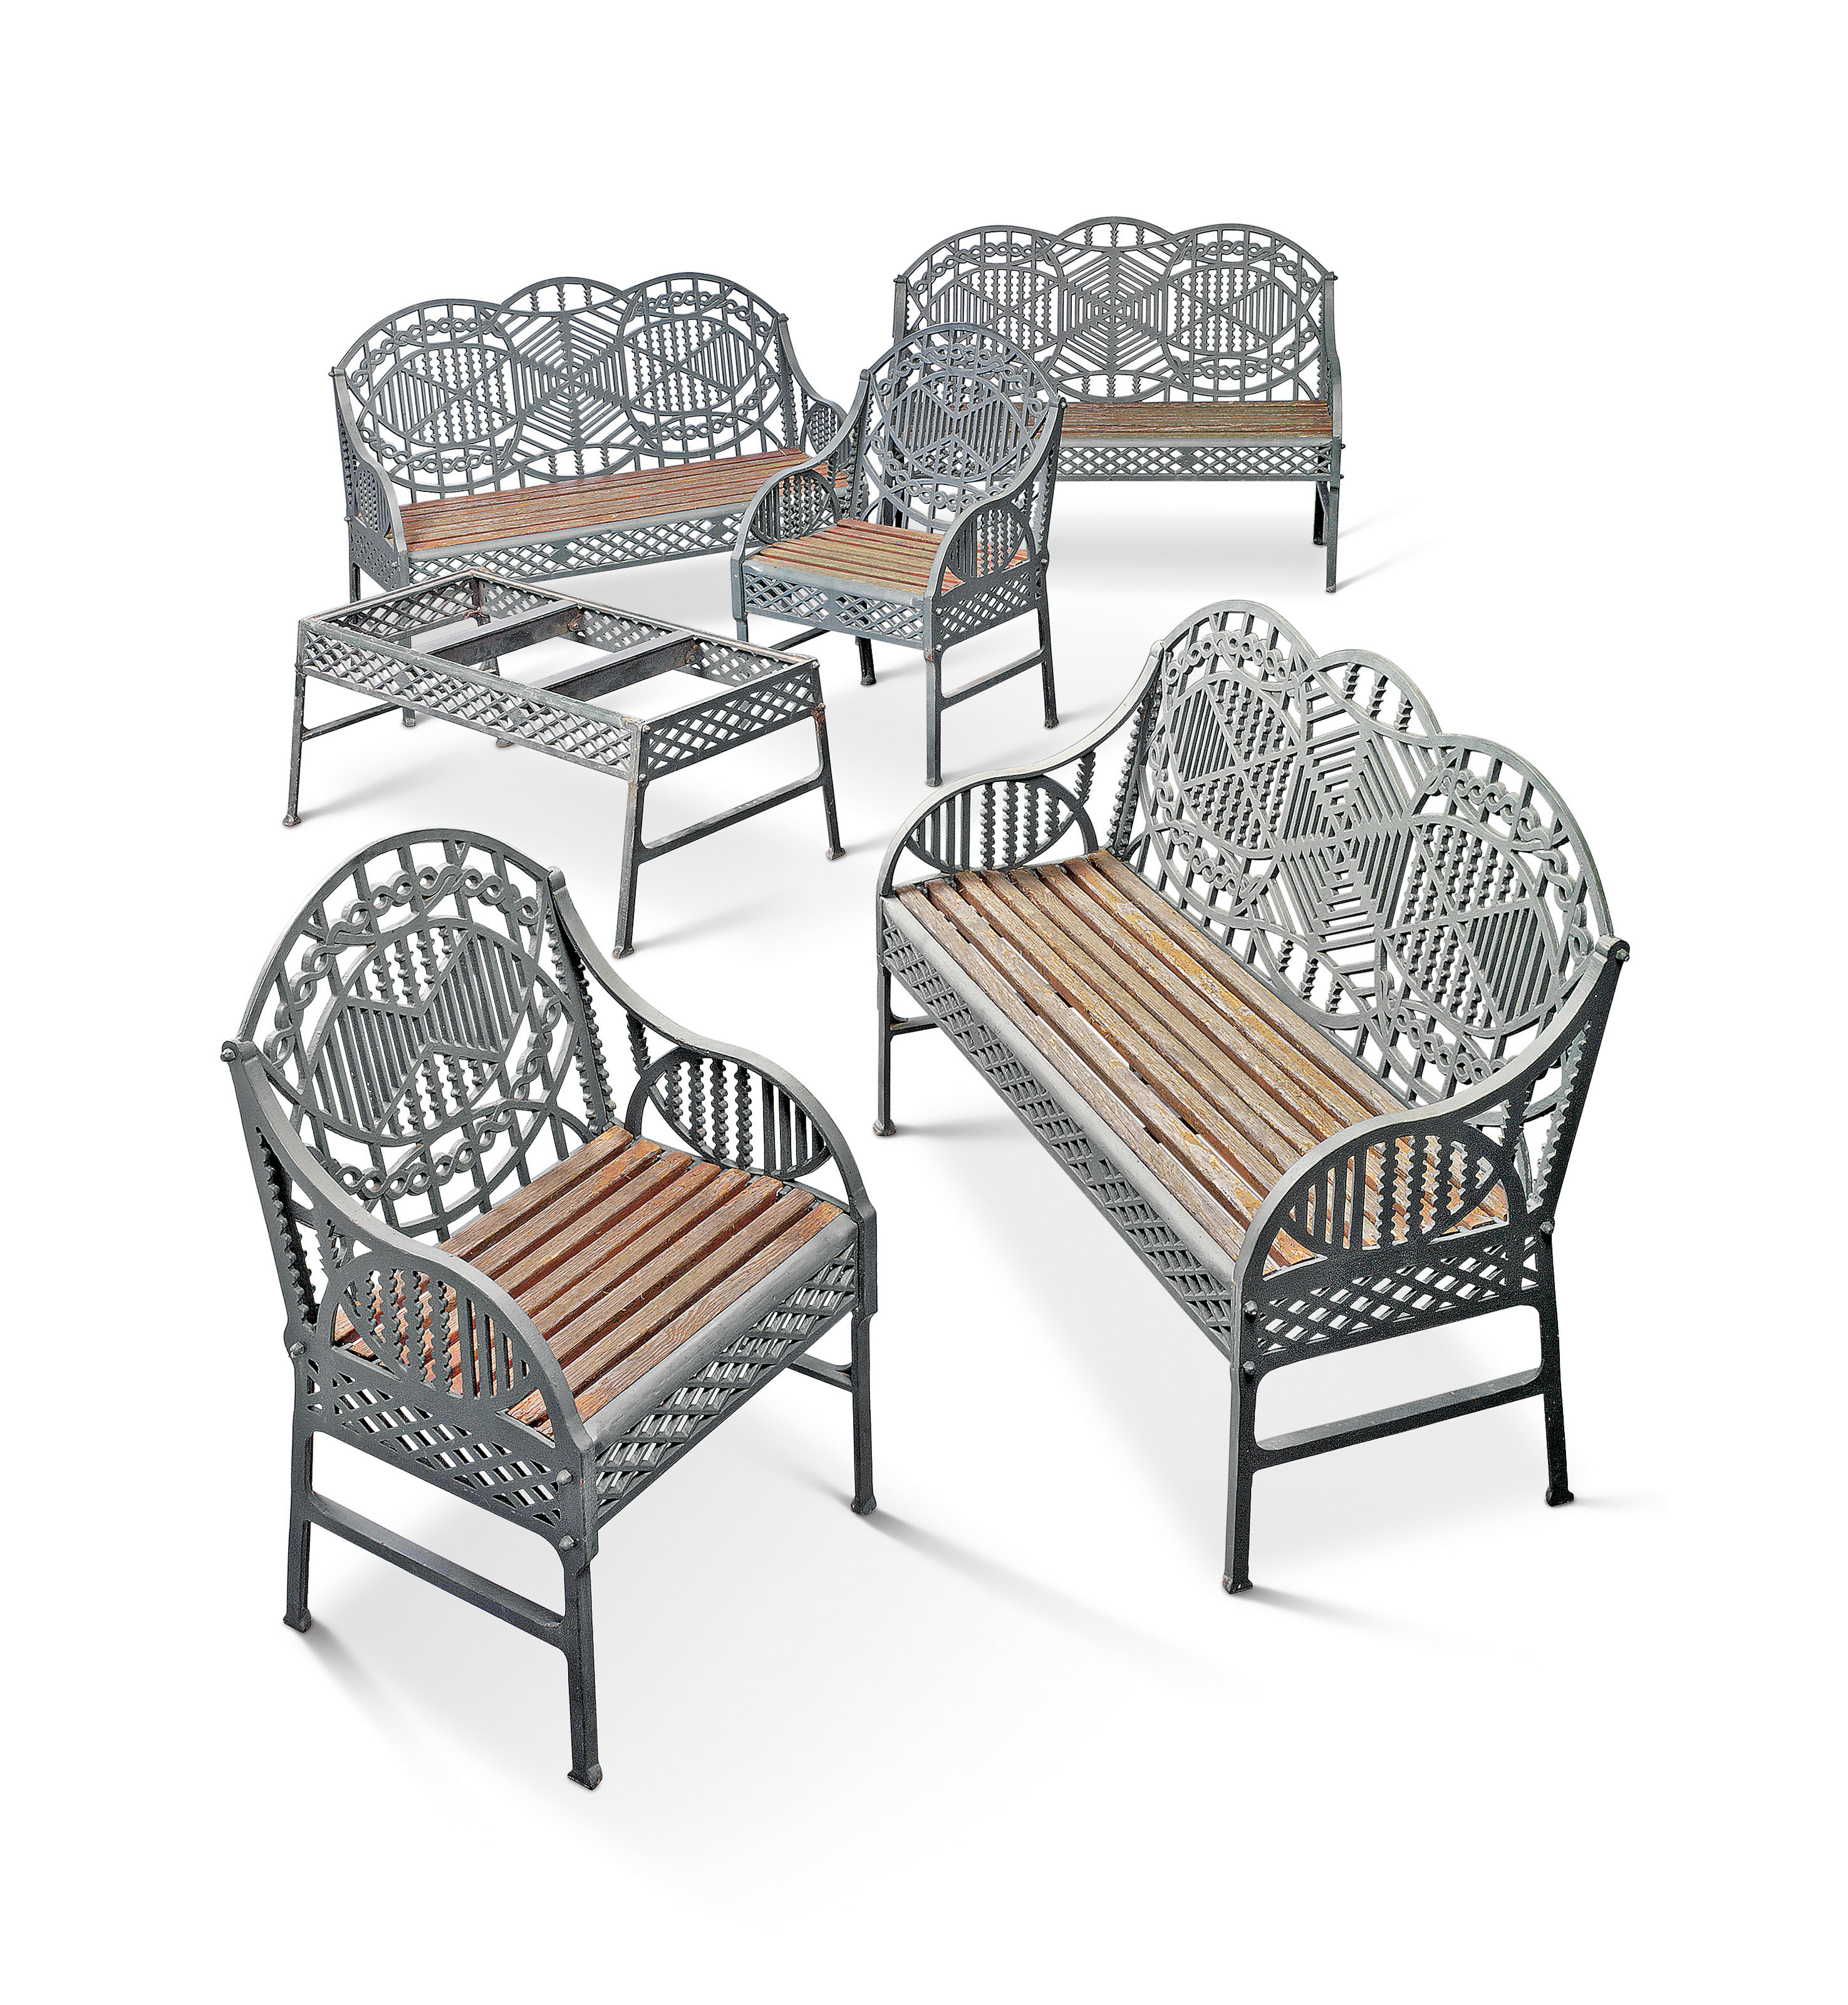 A suite of green painted cast iron garden furniture